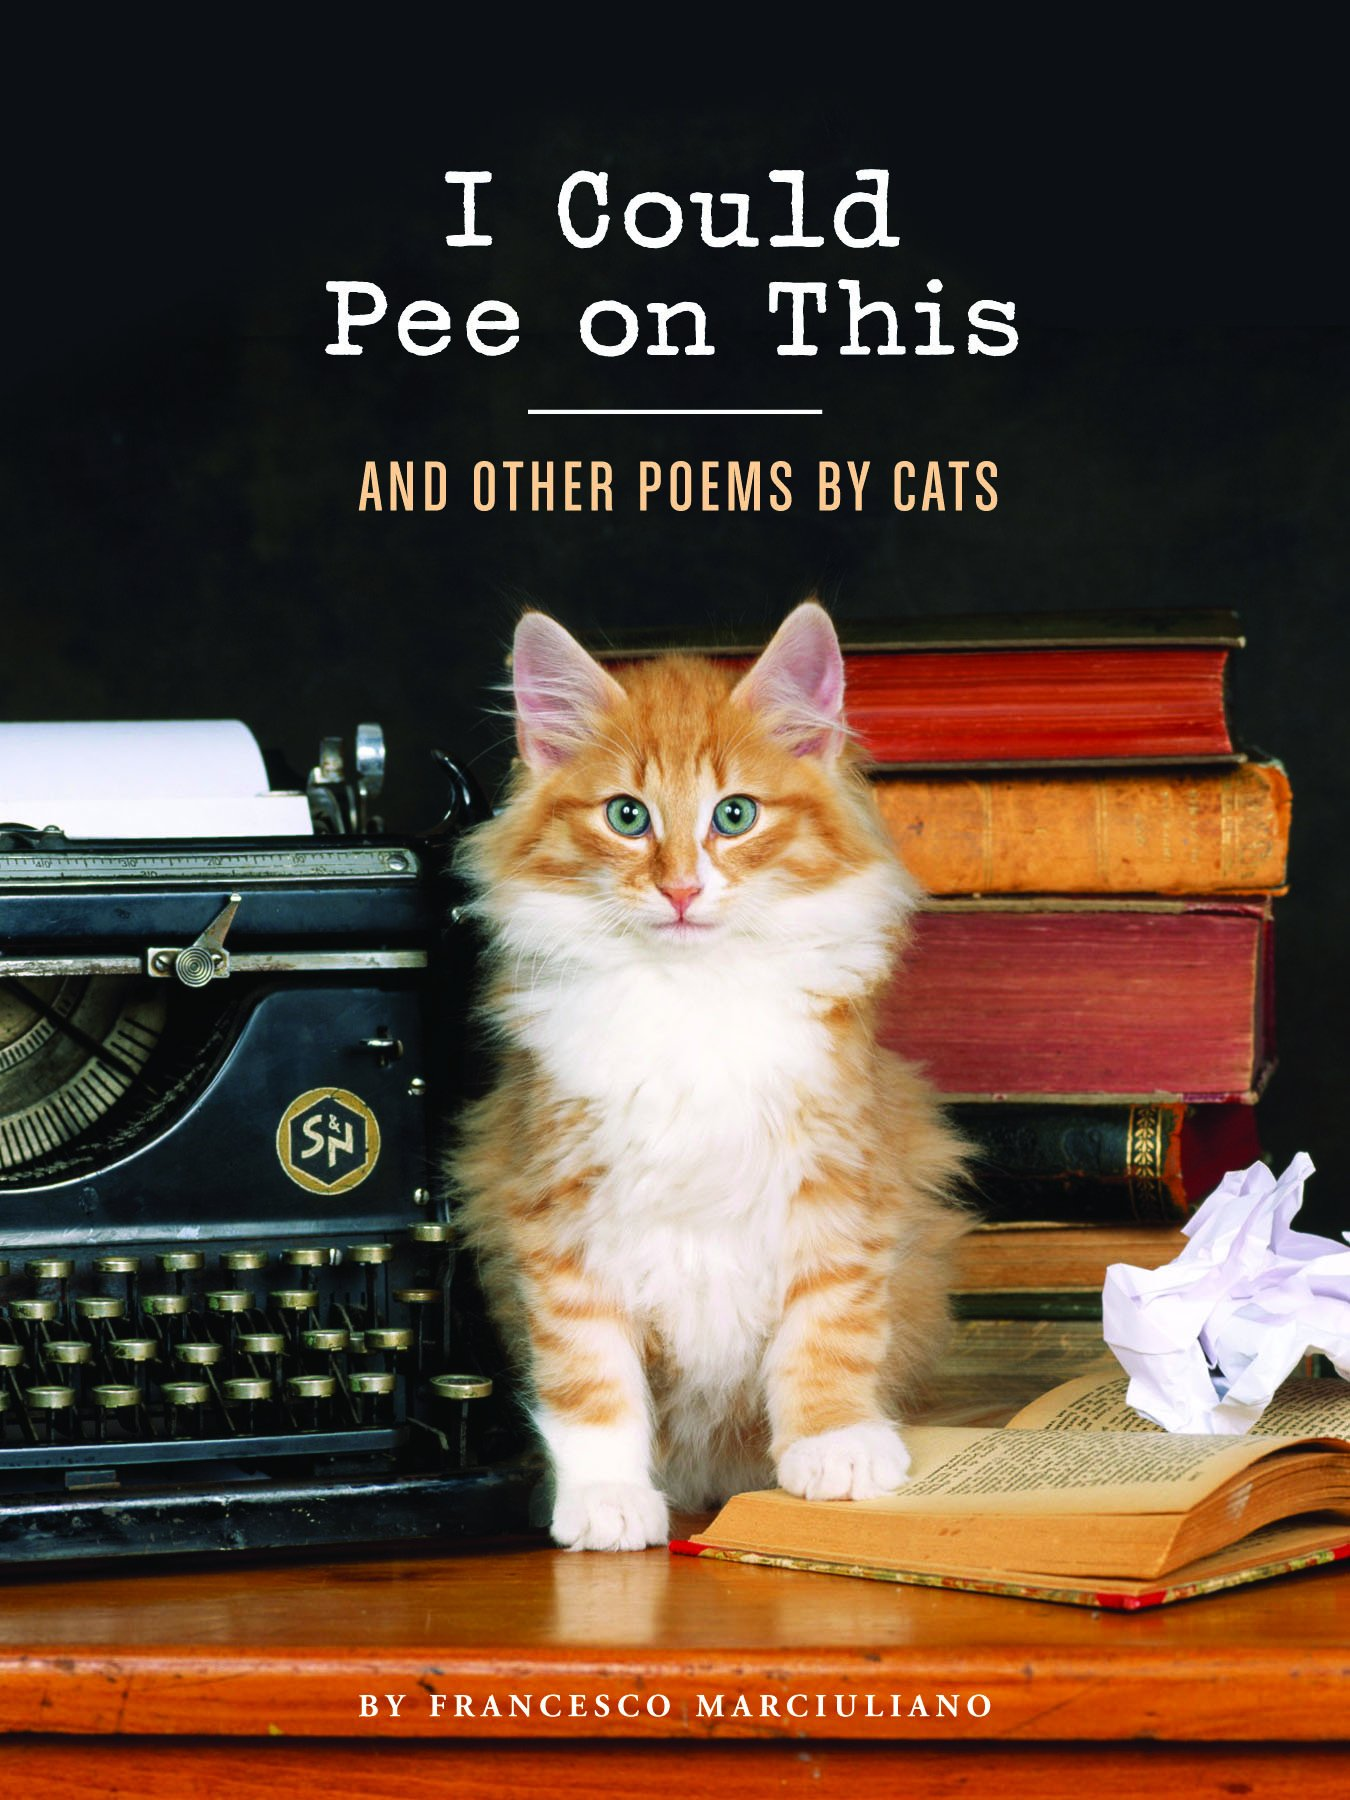 'I Could Pee on This: And Other Poems by Cats' by Francesco Marciuliano